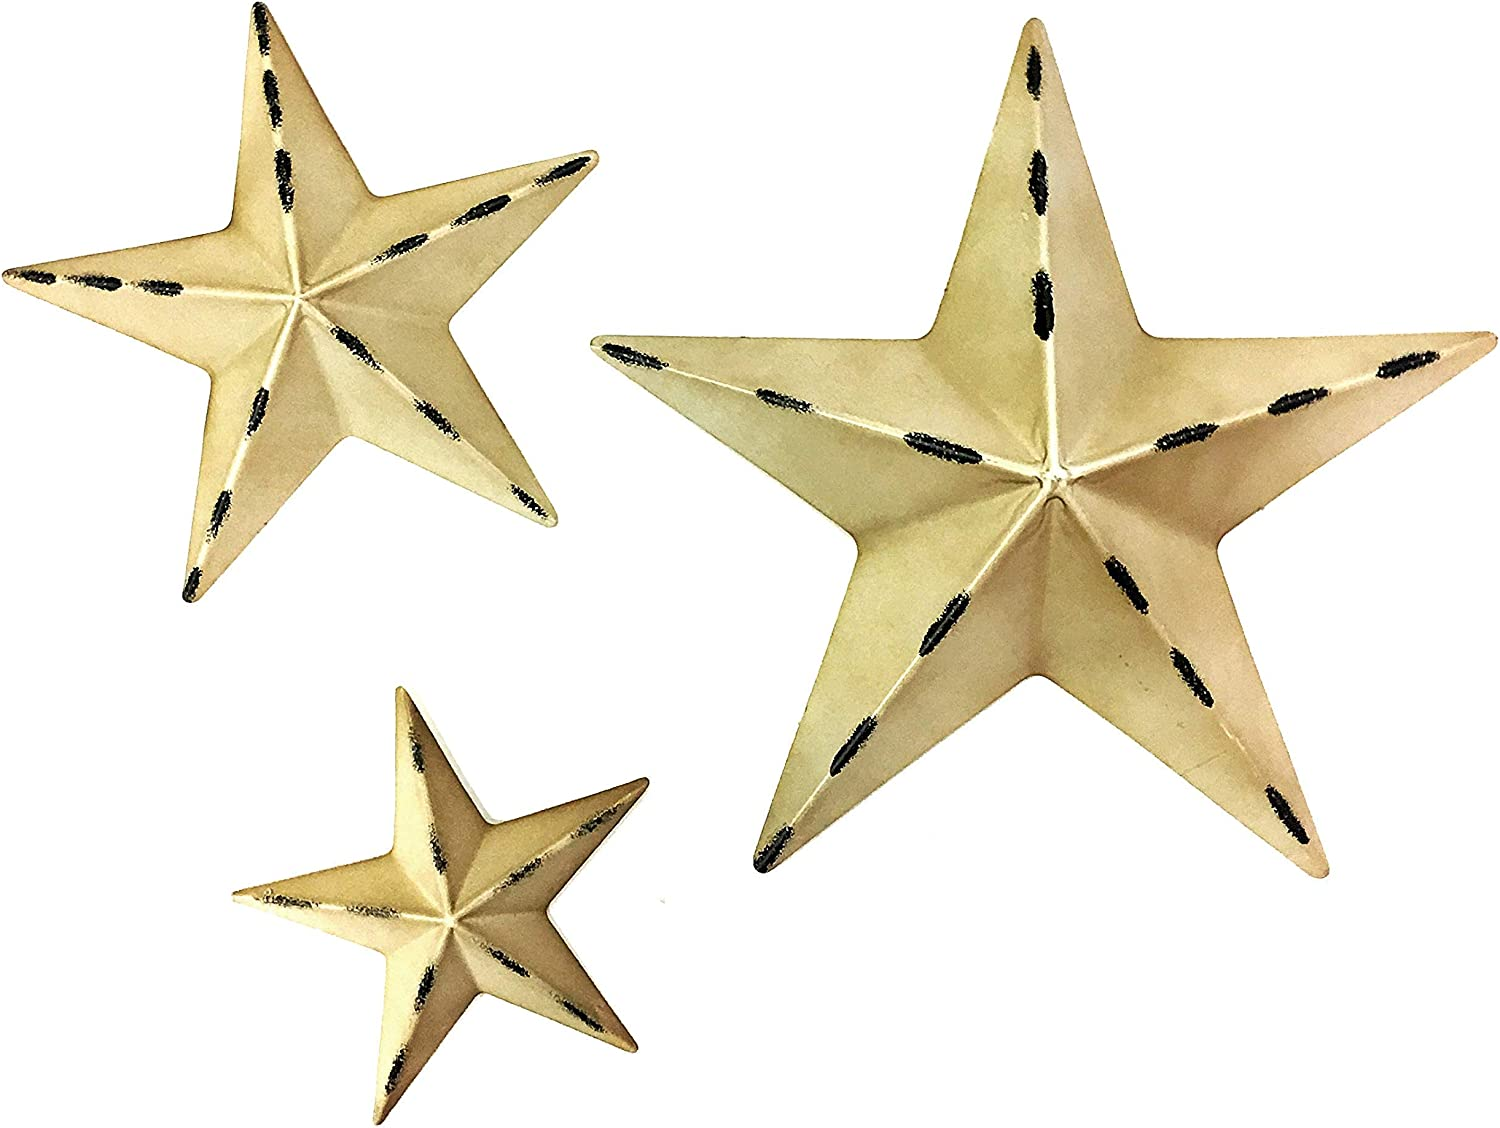 Bellaa 24148 Star Wall Decorative Farmhouse Barn Stars Western Texas 12 and 8 and 6 inch Design Wall Decor Sets Metal Art White Rustic Outdoor